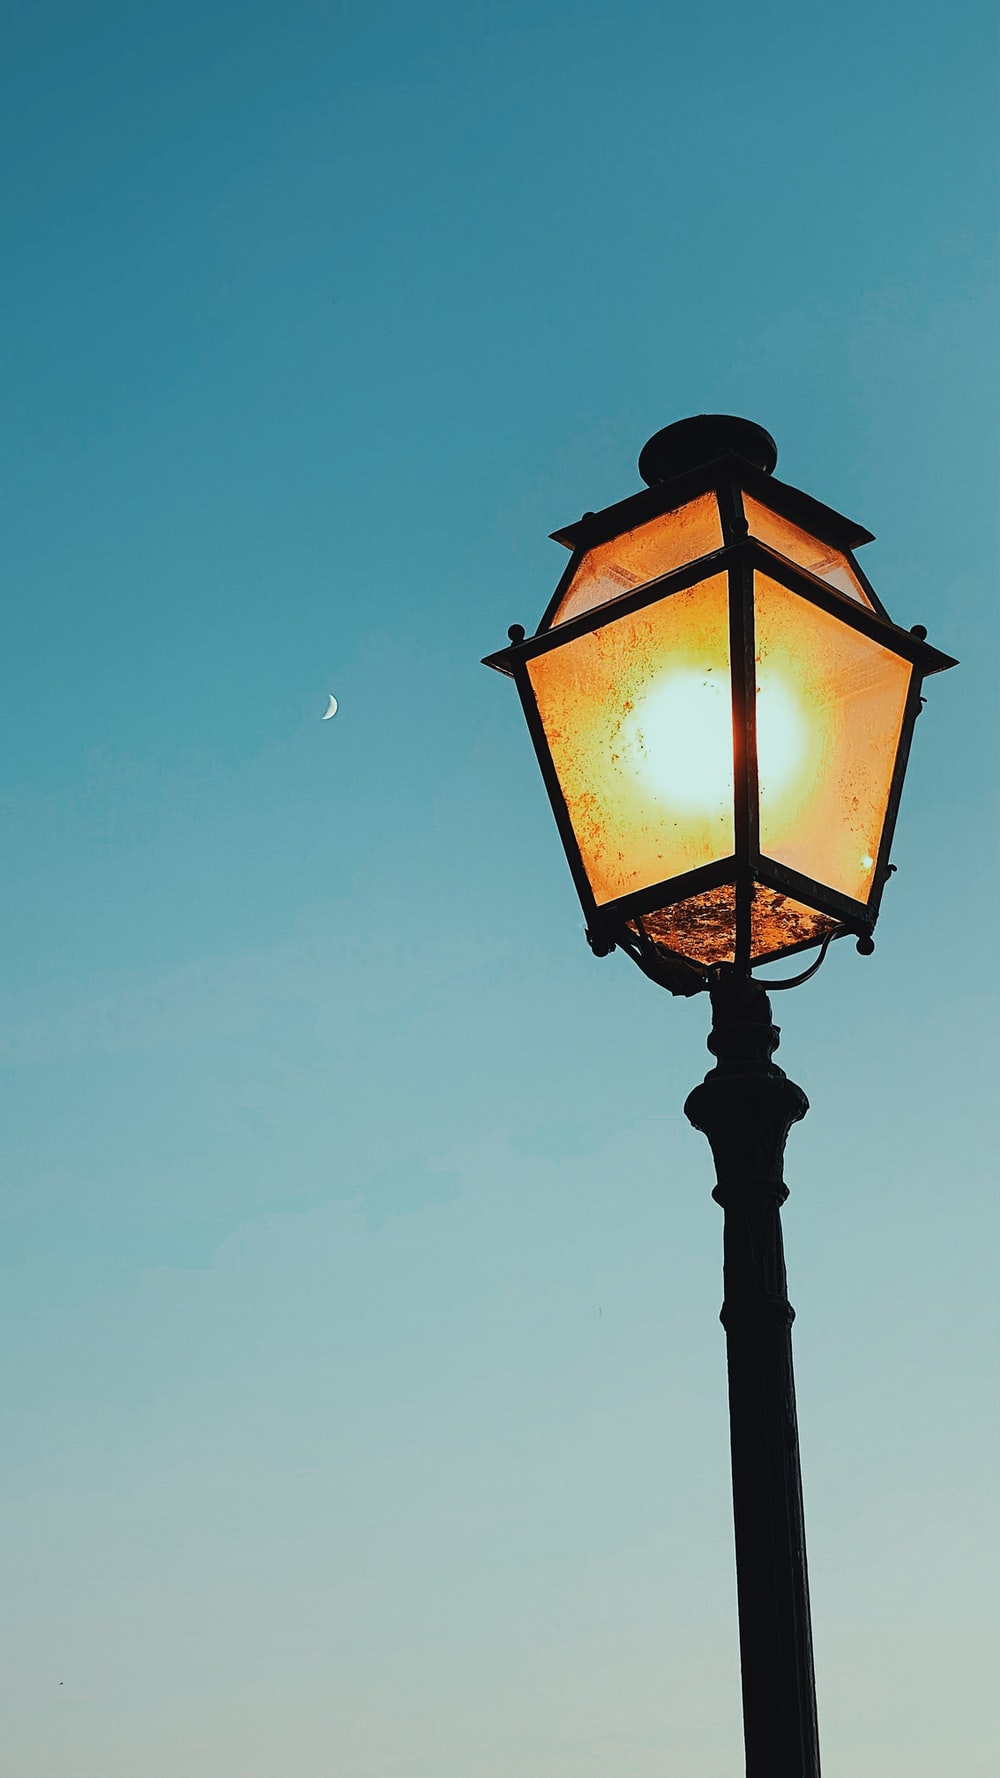 black street lamp turned on during night time